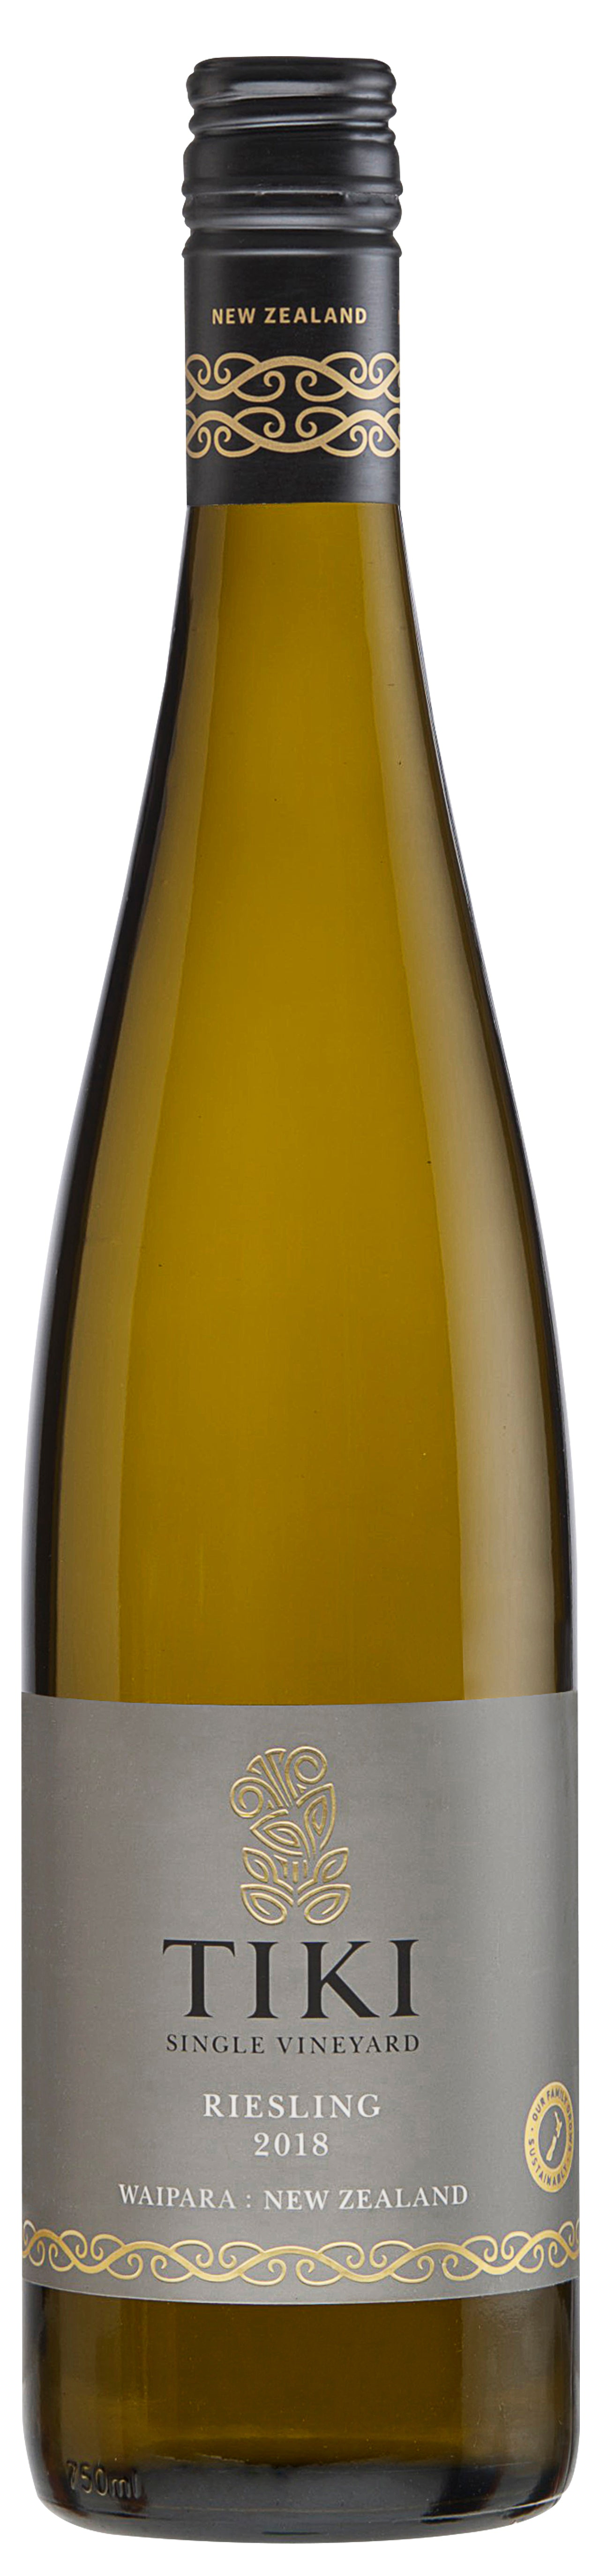 Tiki Single Vineyard Waipara Riesling 2018 - $25 a bottle - $150 for a 6 pack